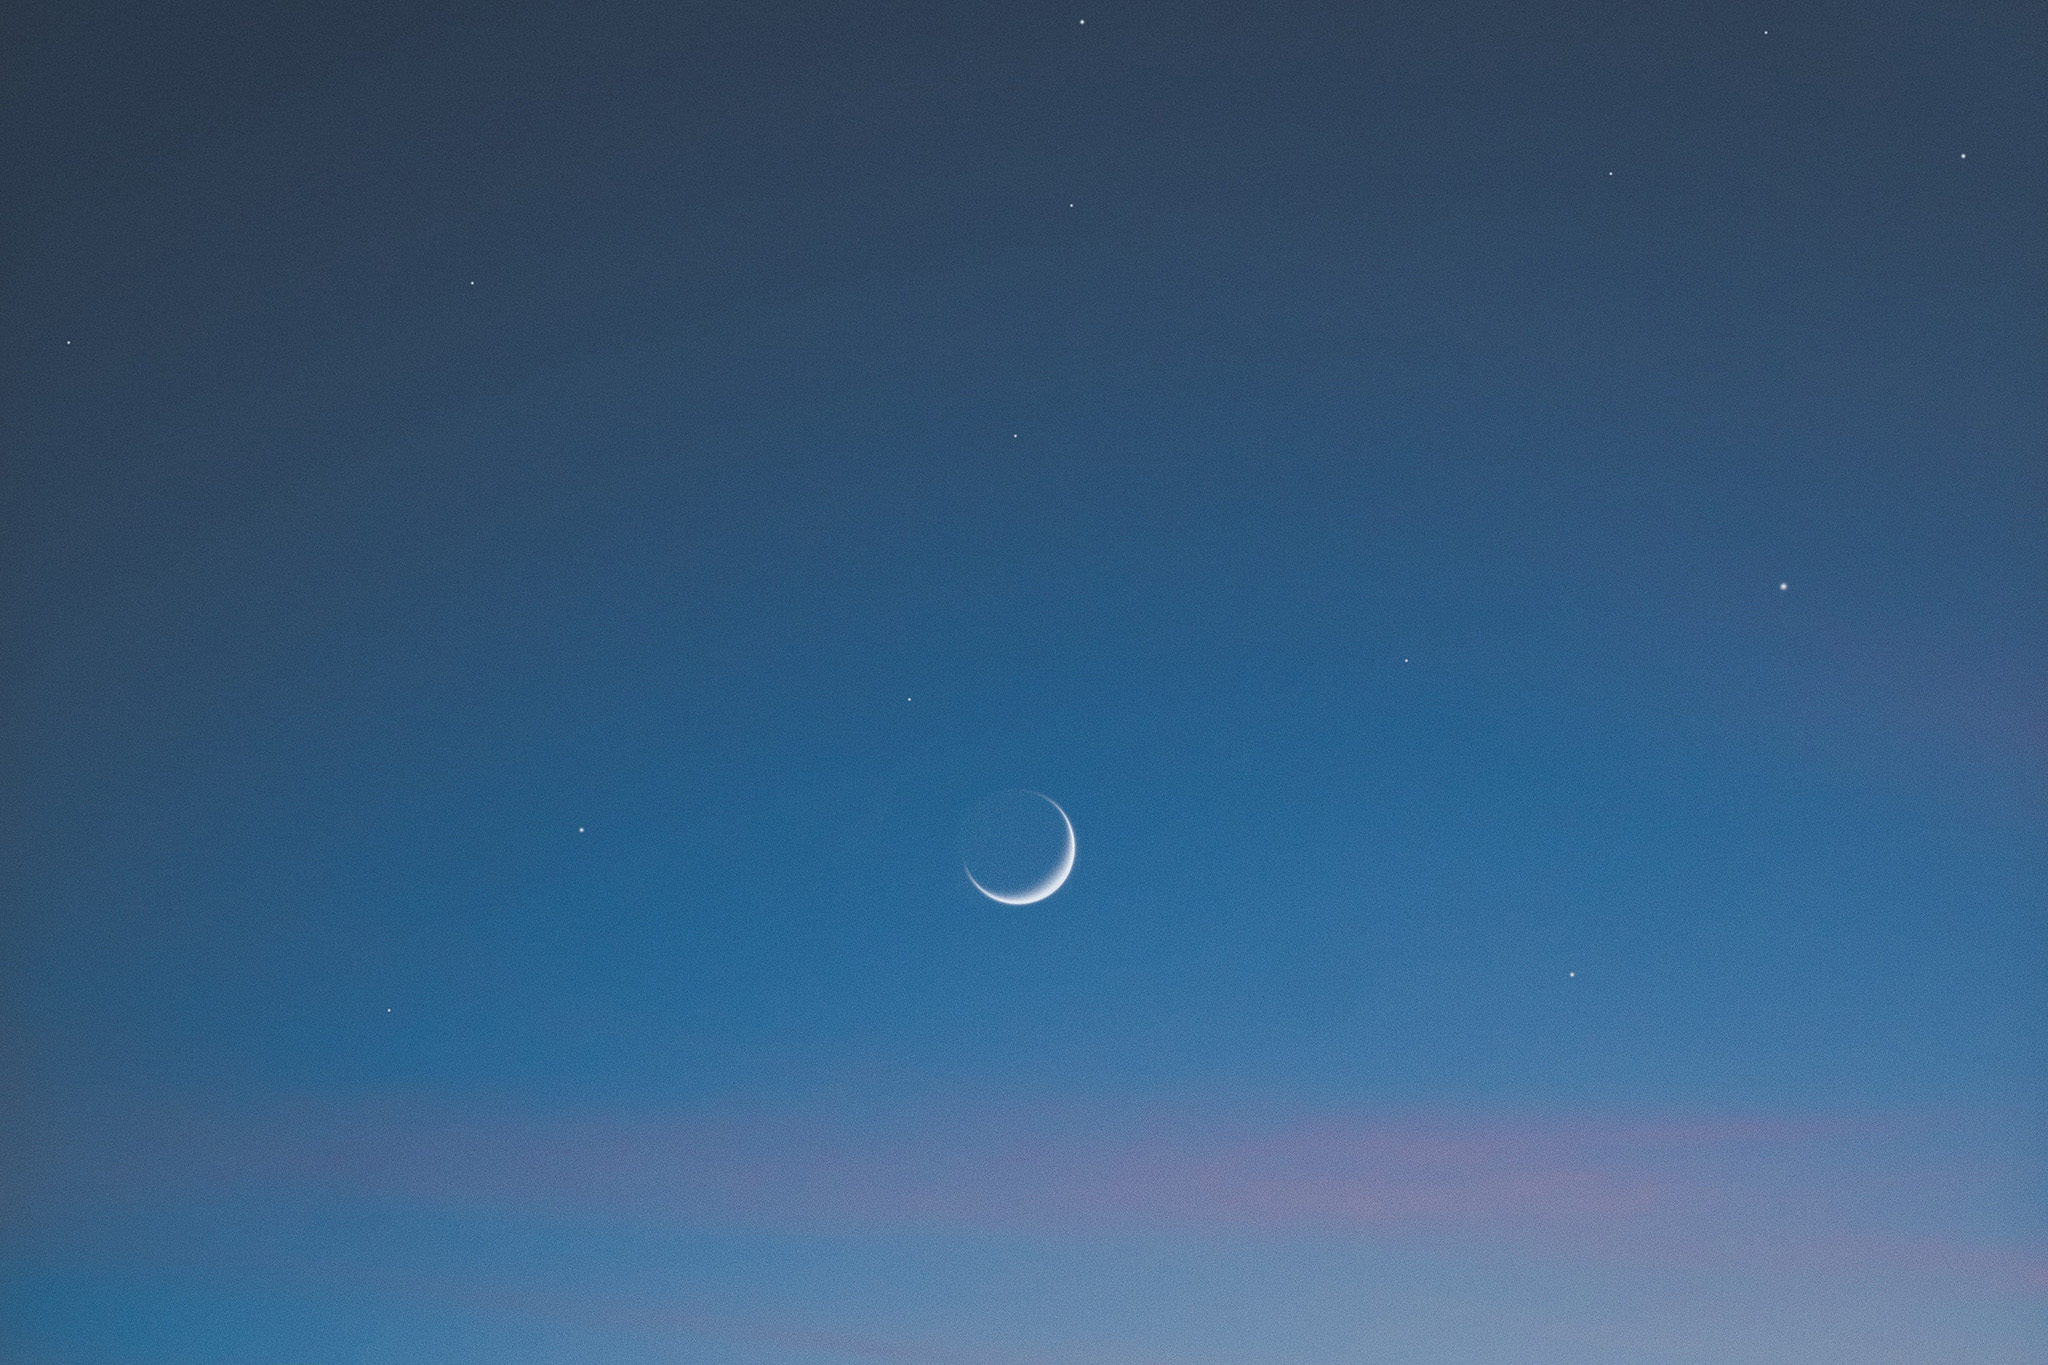 New moon hanging in a blue and pink sky, representing the time to perform a new moon ritual and set intentions for the next lunar cycle.